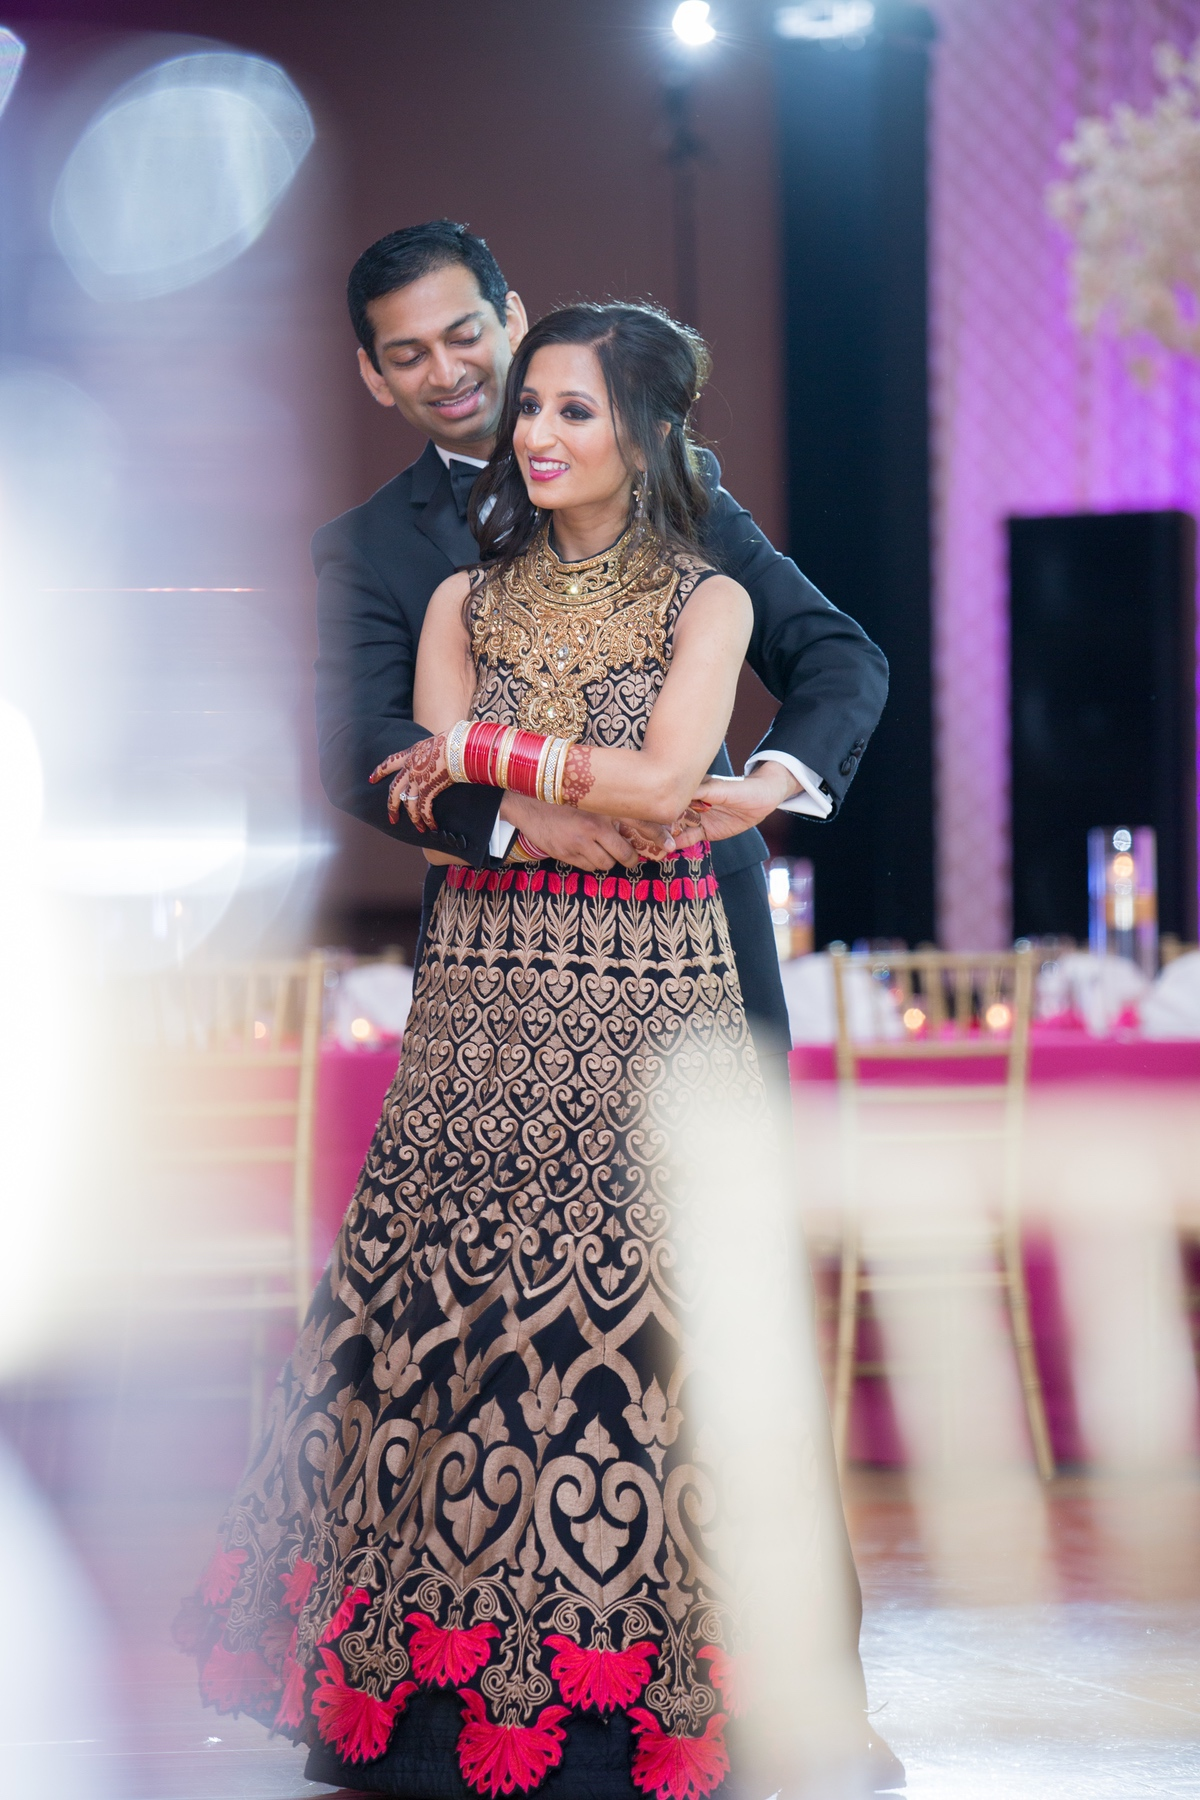 Le Cape Weddings - South Asian Wedding - Chicago Wedding Photographer P&V-63-2.jpg